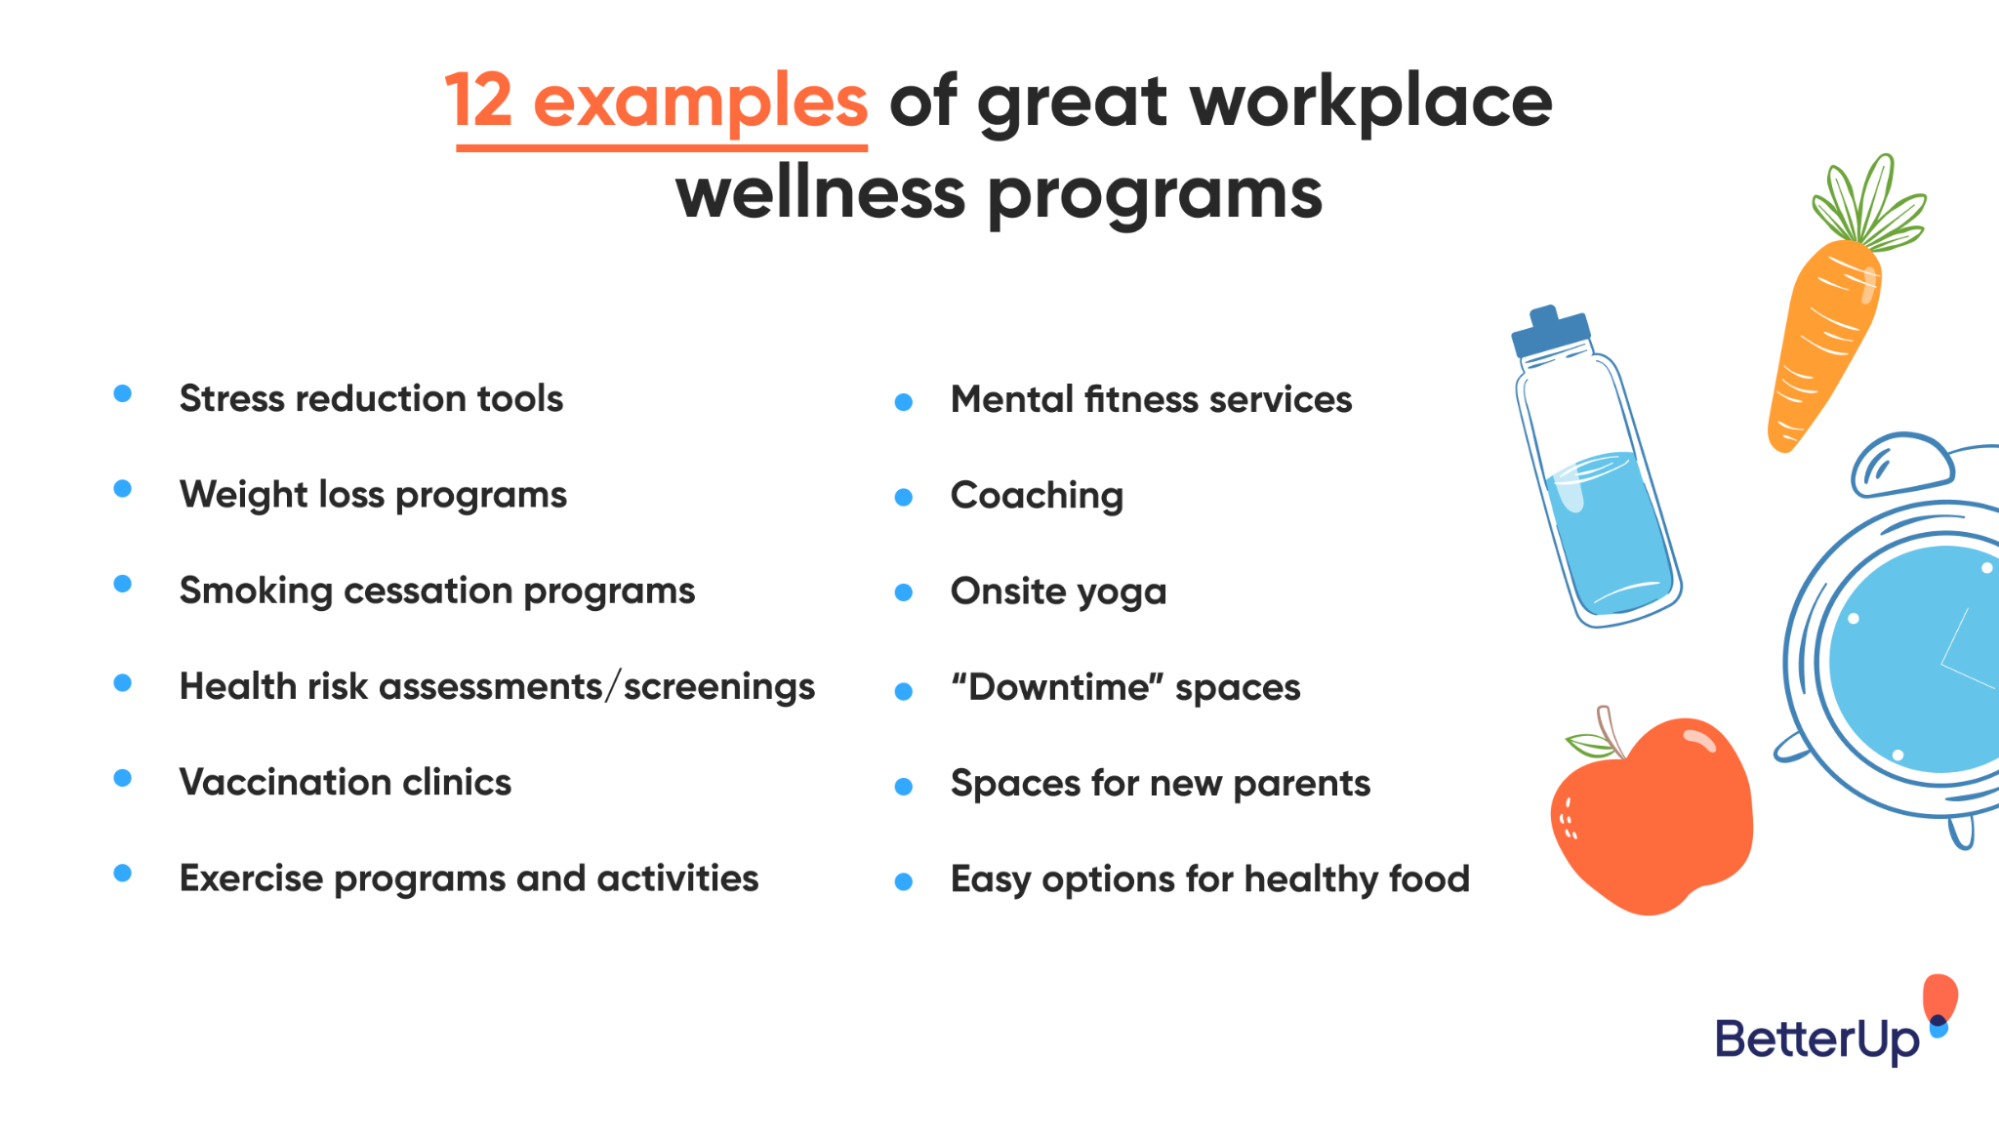 12-examples-of-great-workplace-wellness-programs